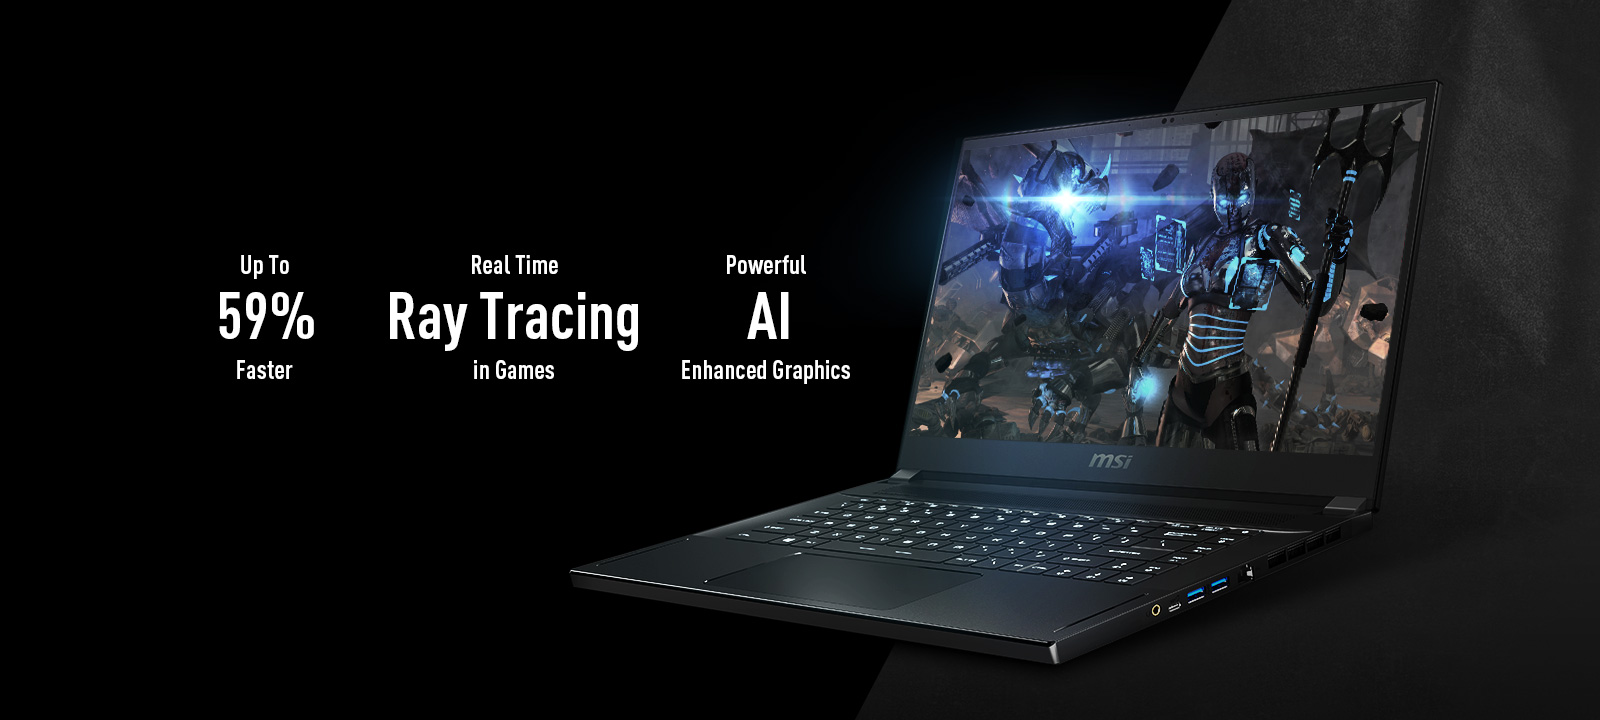 GS66 Stealth widely opened to left. An art background is on the screen. Text left it says: Up to 59% faster, Real Time Ray Tracing in Games, Powerful AI Enhanced Graphics